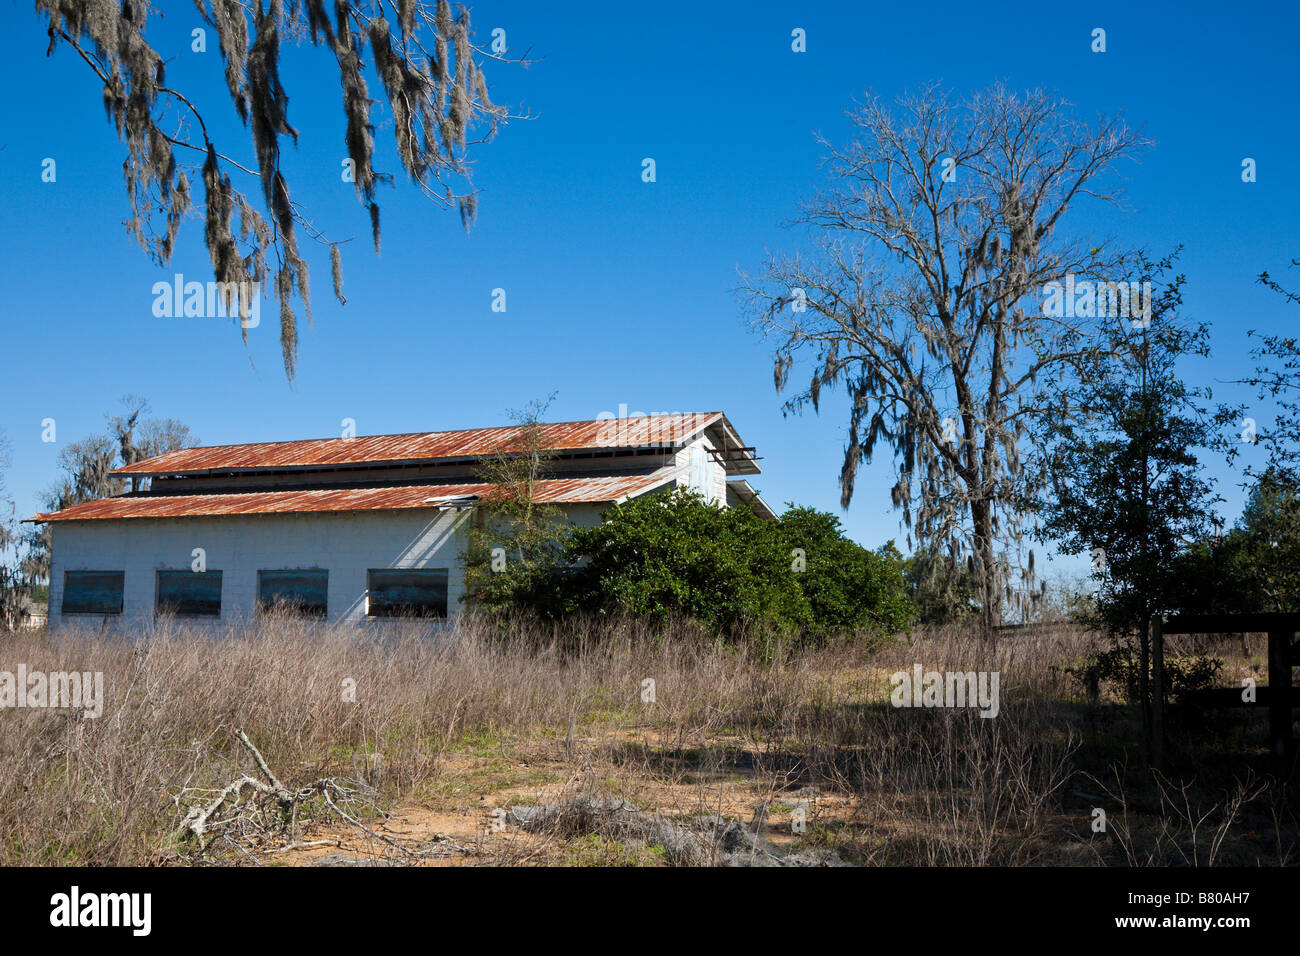 Abandoned horse barn in Ocala, Florida - Stock Image